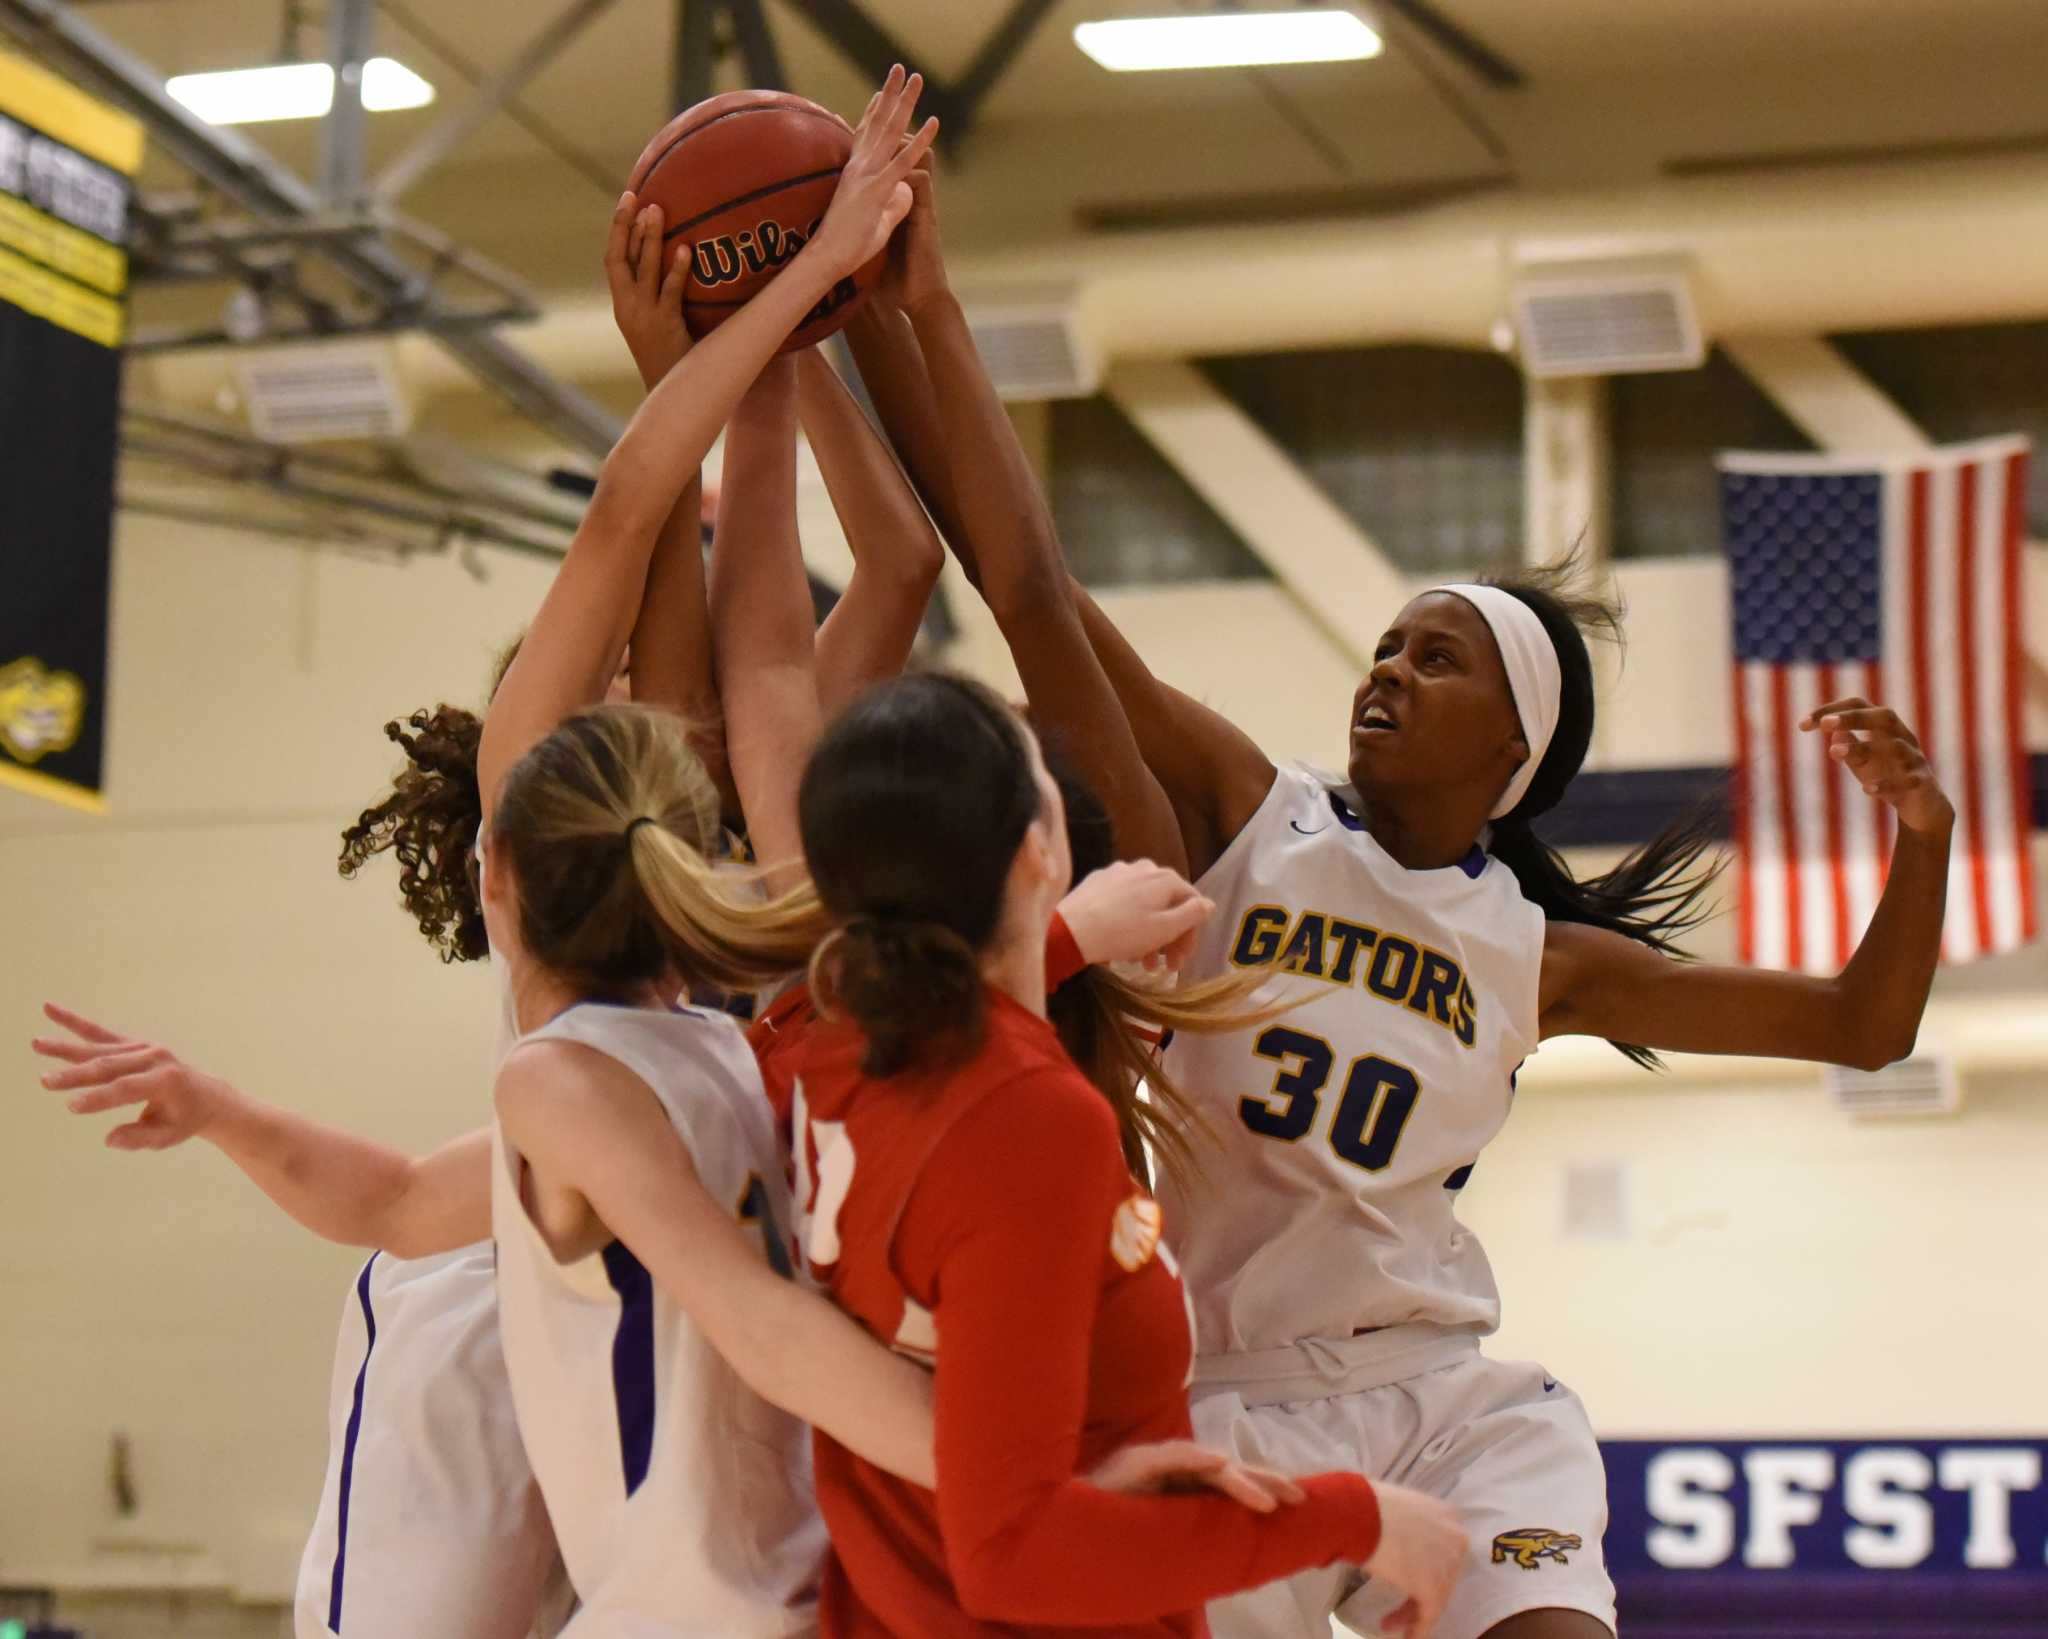 SF State Gator Kiara Ginwright fights for a rebound as the Gators face the Stanislaus State Warriors at The Swamp Gymnasium Saturday, Dec. 5. (David Henry / Xpress)